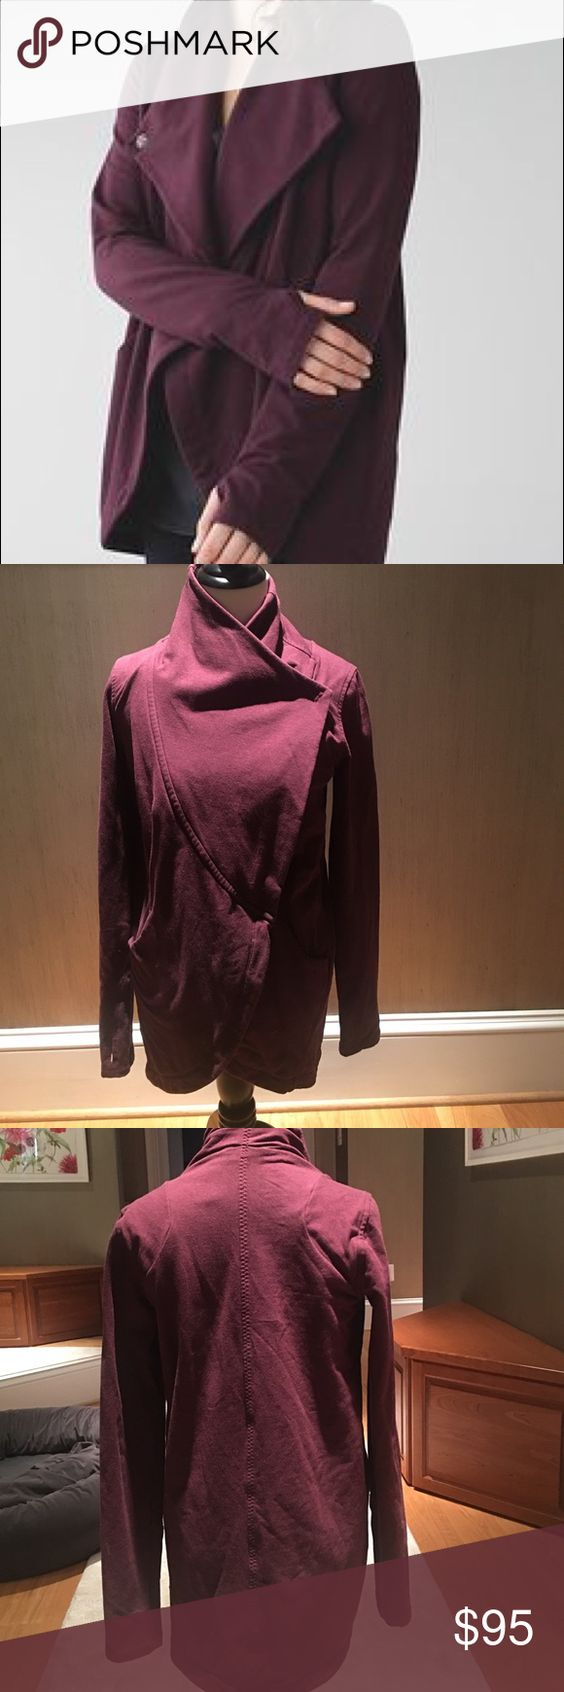 Women's Lululemon wrap coat Burgundy Lululemon wrap coat with two snaps and two pockets with thumb holes. in excellent condition. lululemon athletica Jackets & Coats Capes